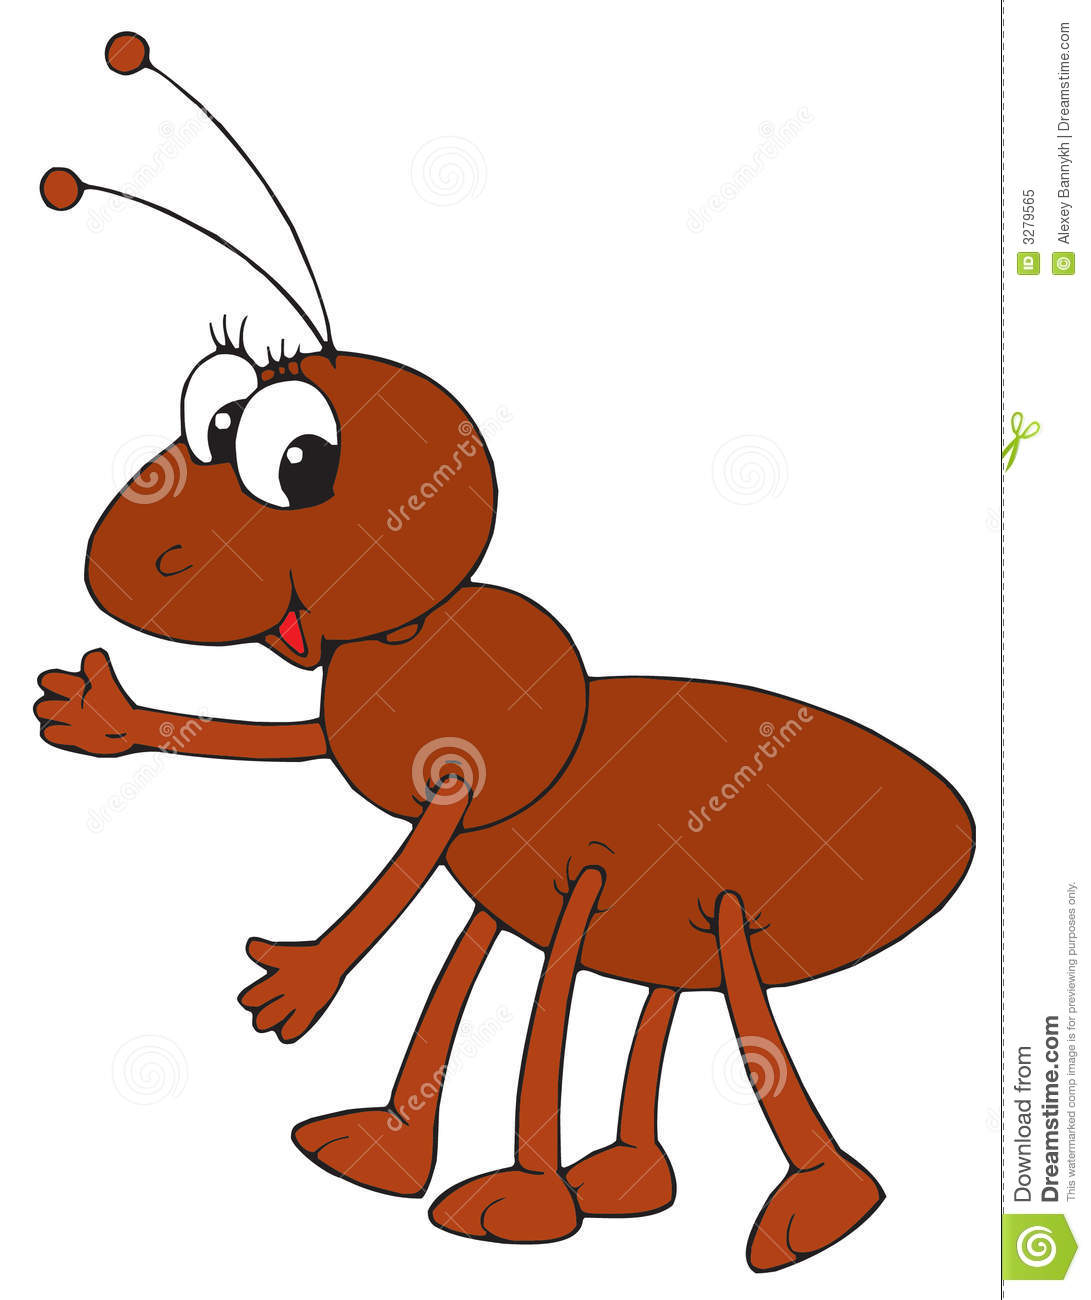 ant clipart clipart panda free clipart images rh clipartpanda com free ant clip art cartoon Cartoon Ants Clip Art Free